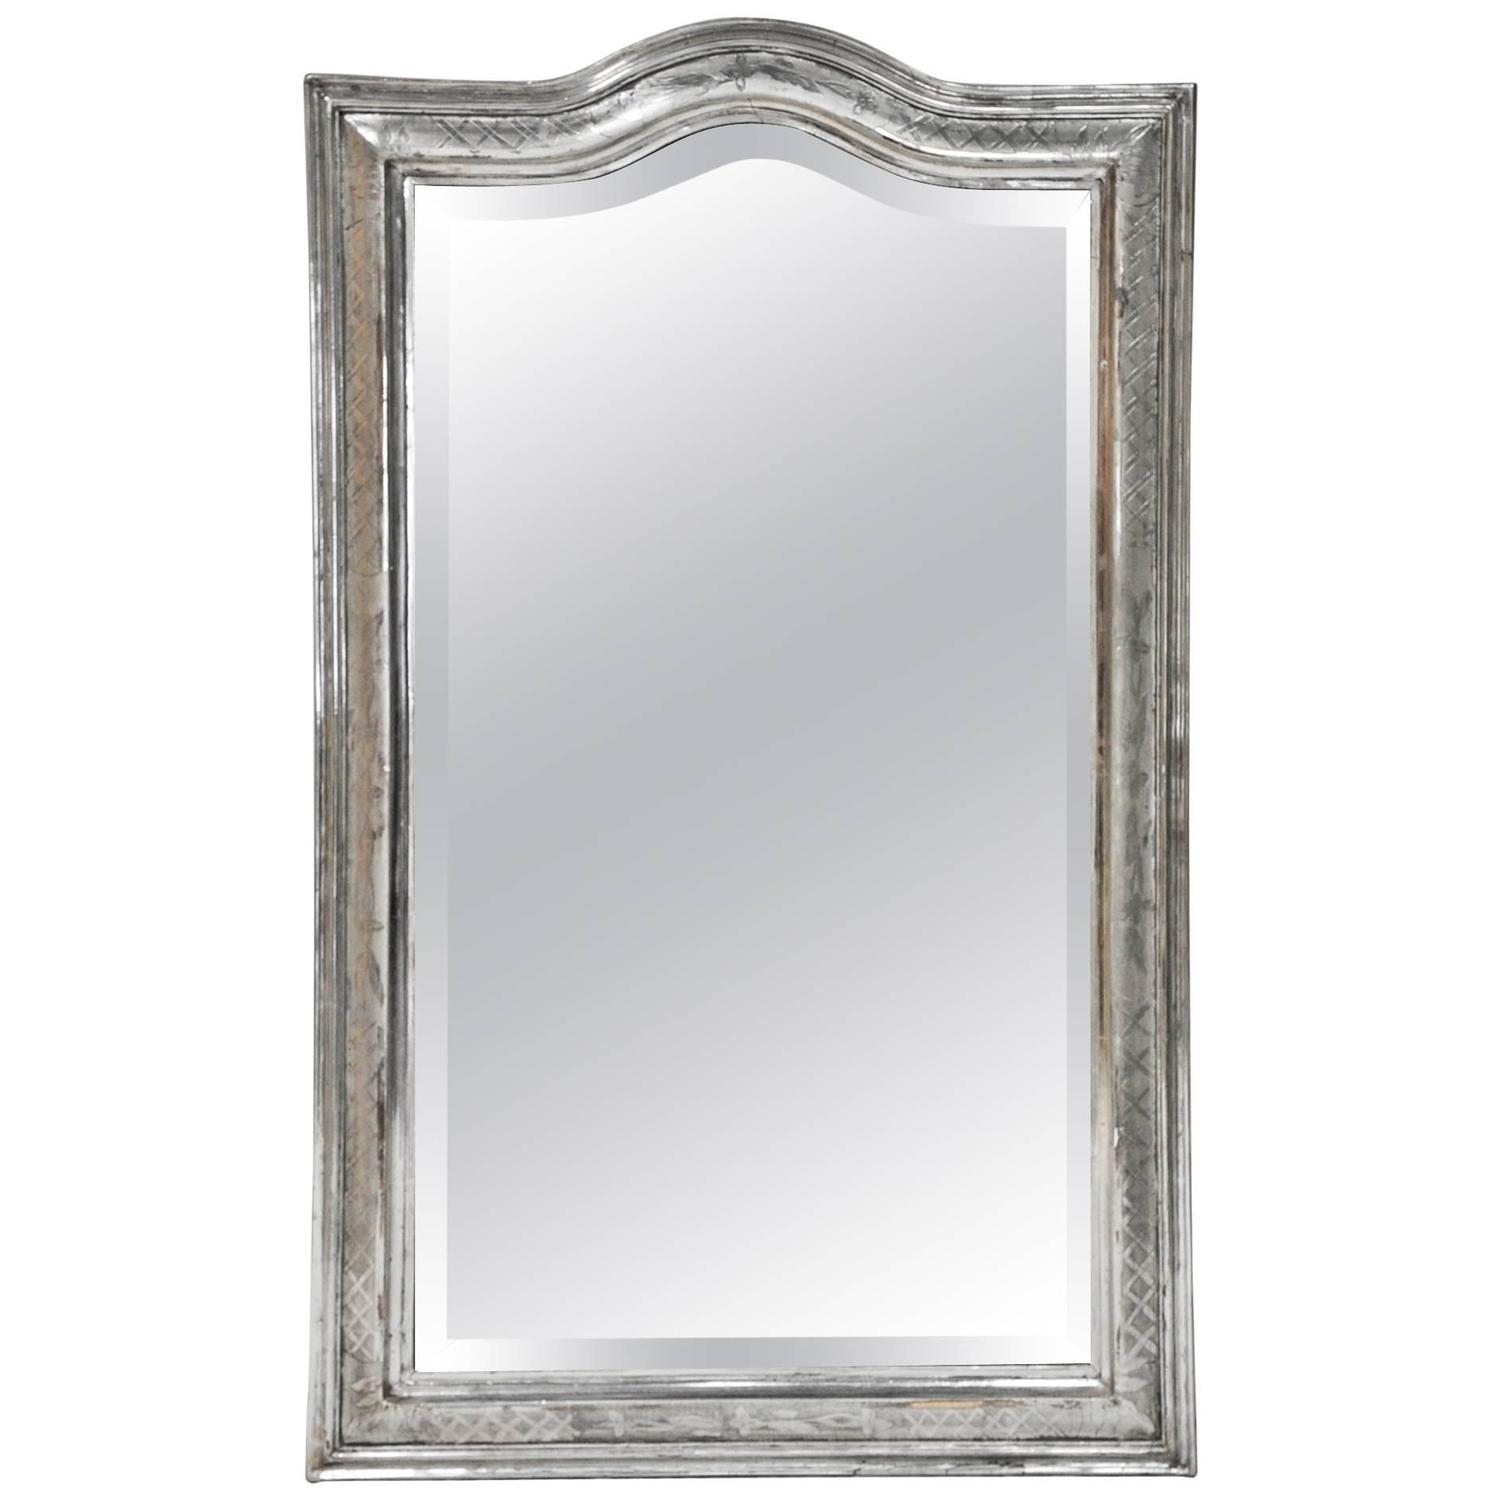 Plaster Mirrors 153 For Sale At 1stdibs Inside Silver French Mirror (Image 11 of 15)